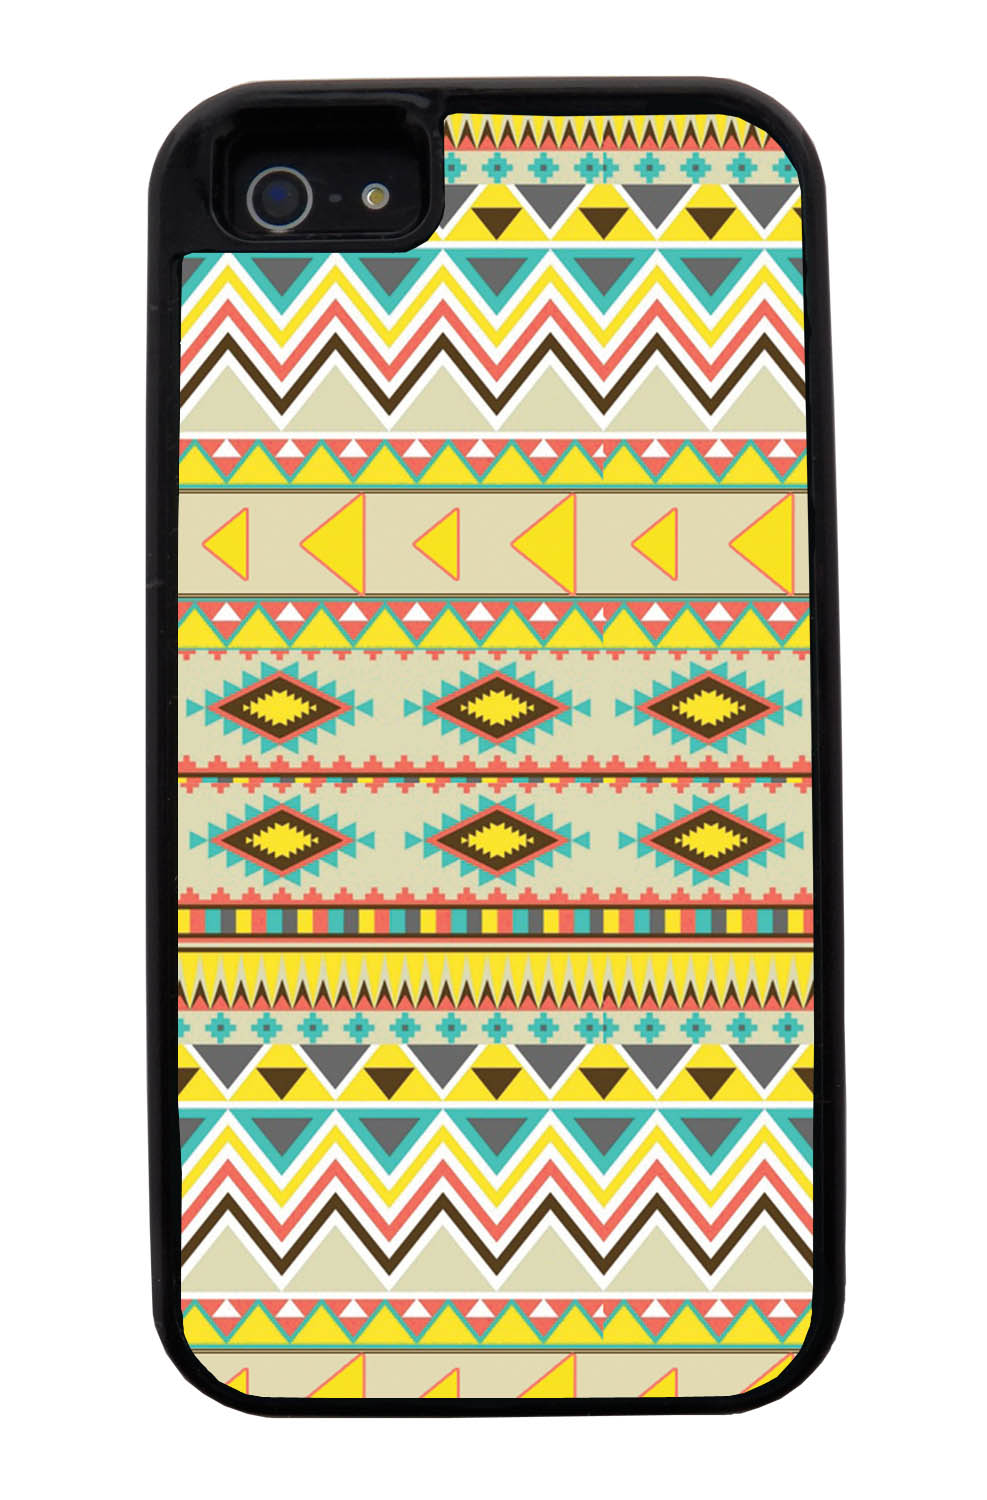 Apple iPhone 5 / 5S Aztec Case - Summer Colored - Geometric - Black Tough Hybrid Case